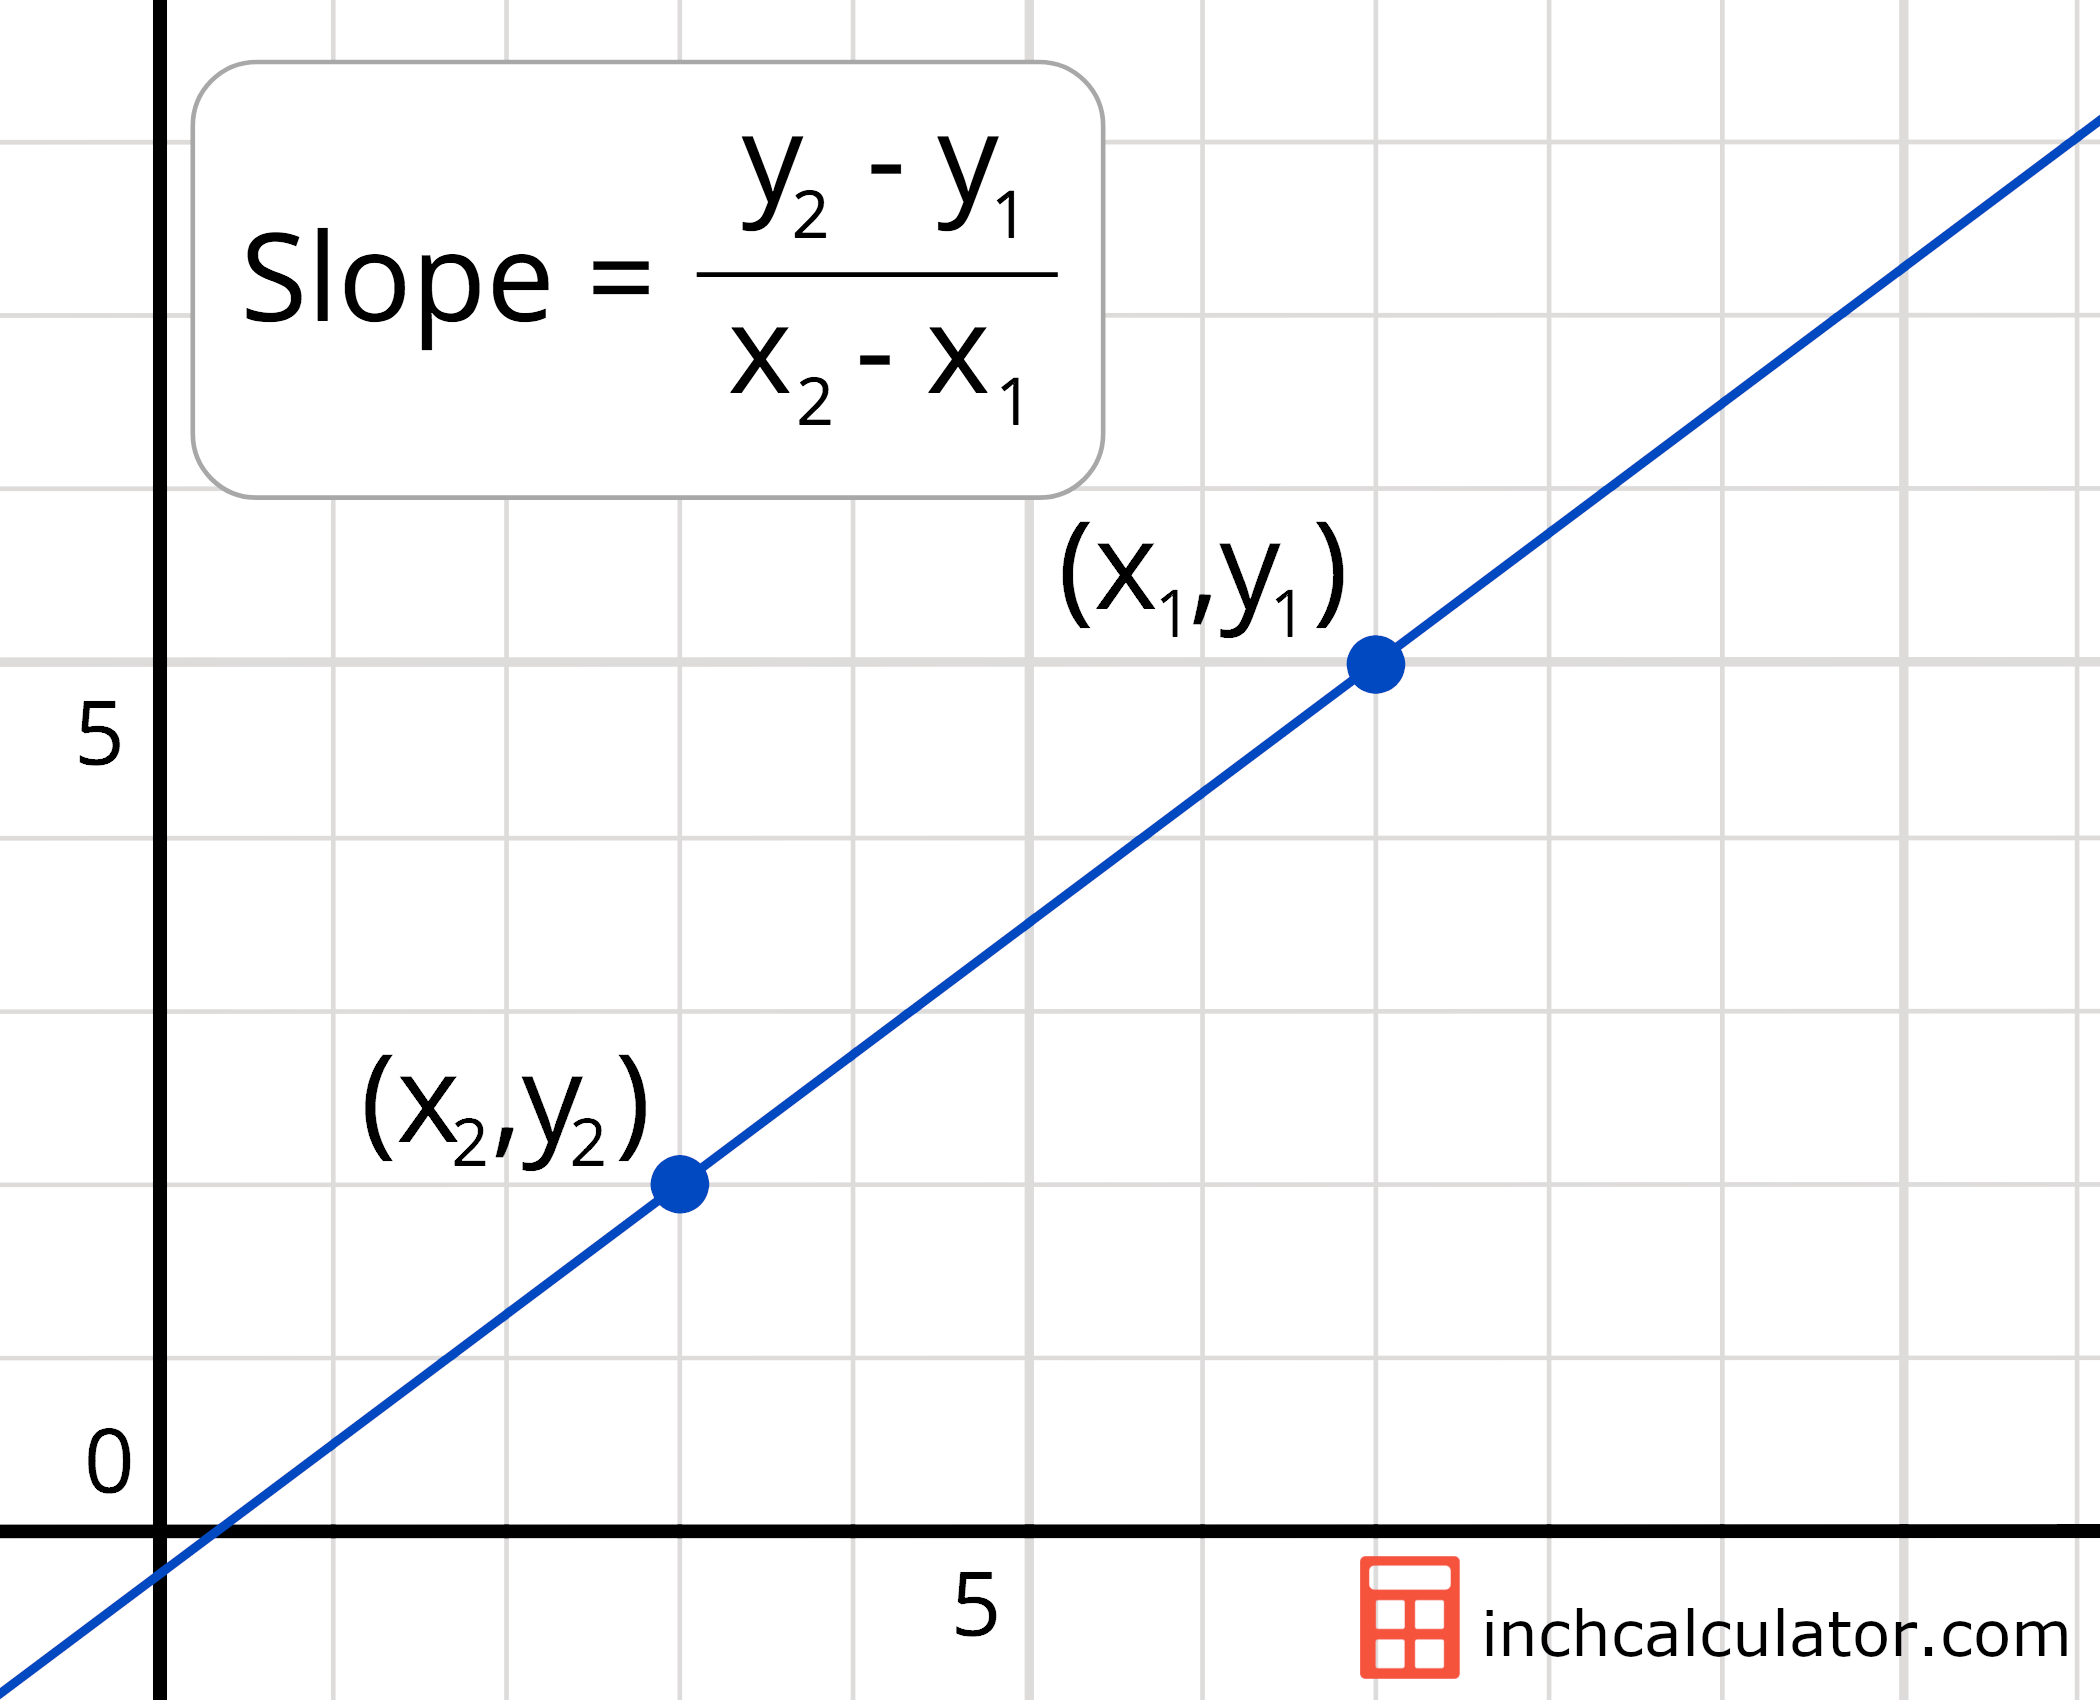 Slope Calculator - Find the Equation of a Line - Inch Calculator